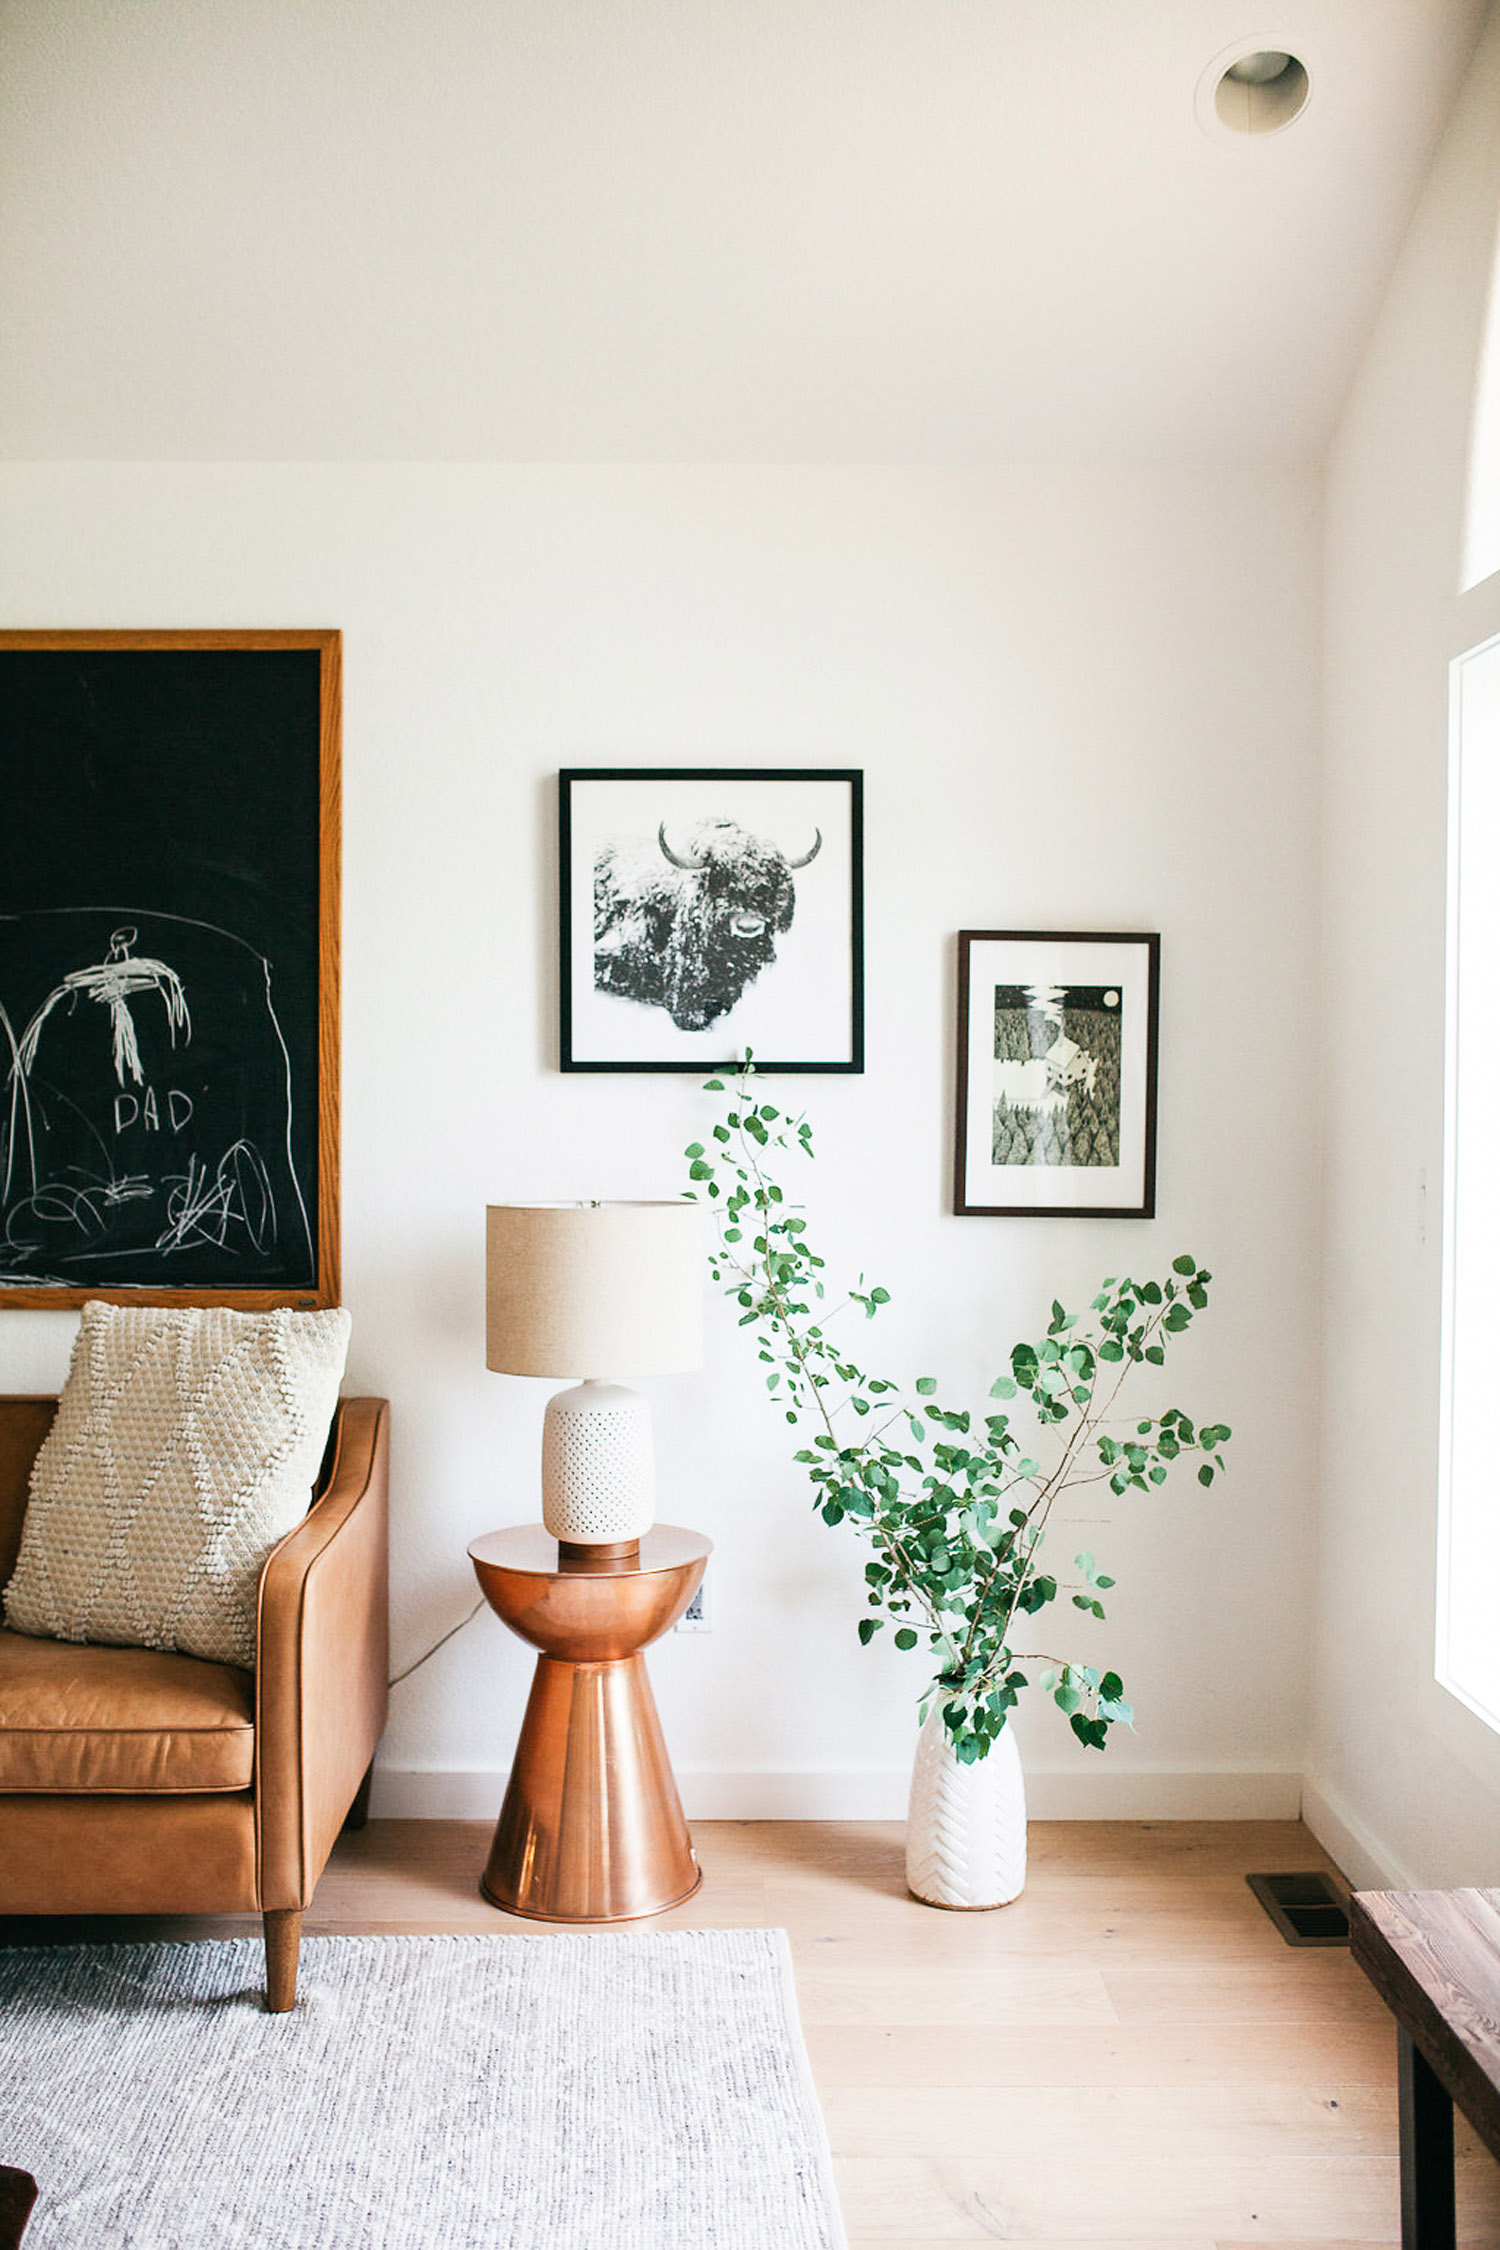 west-elm-family-friendly-decorating-002.jpg